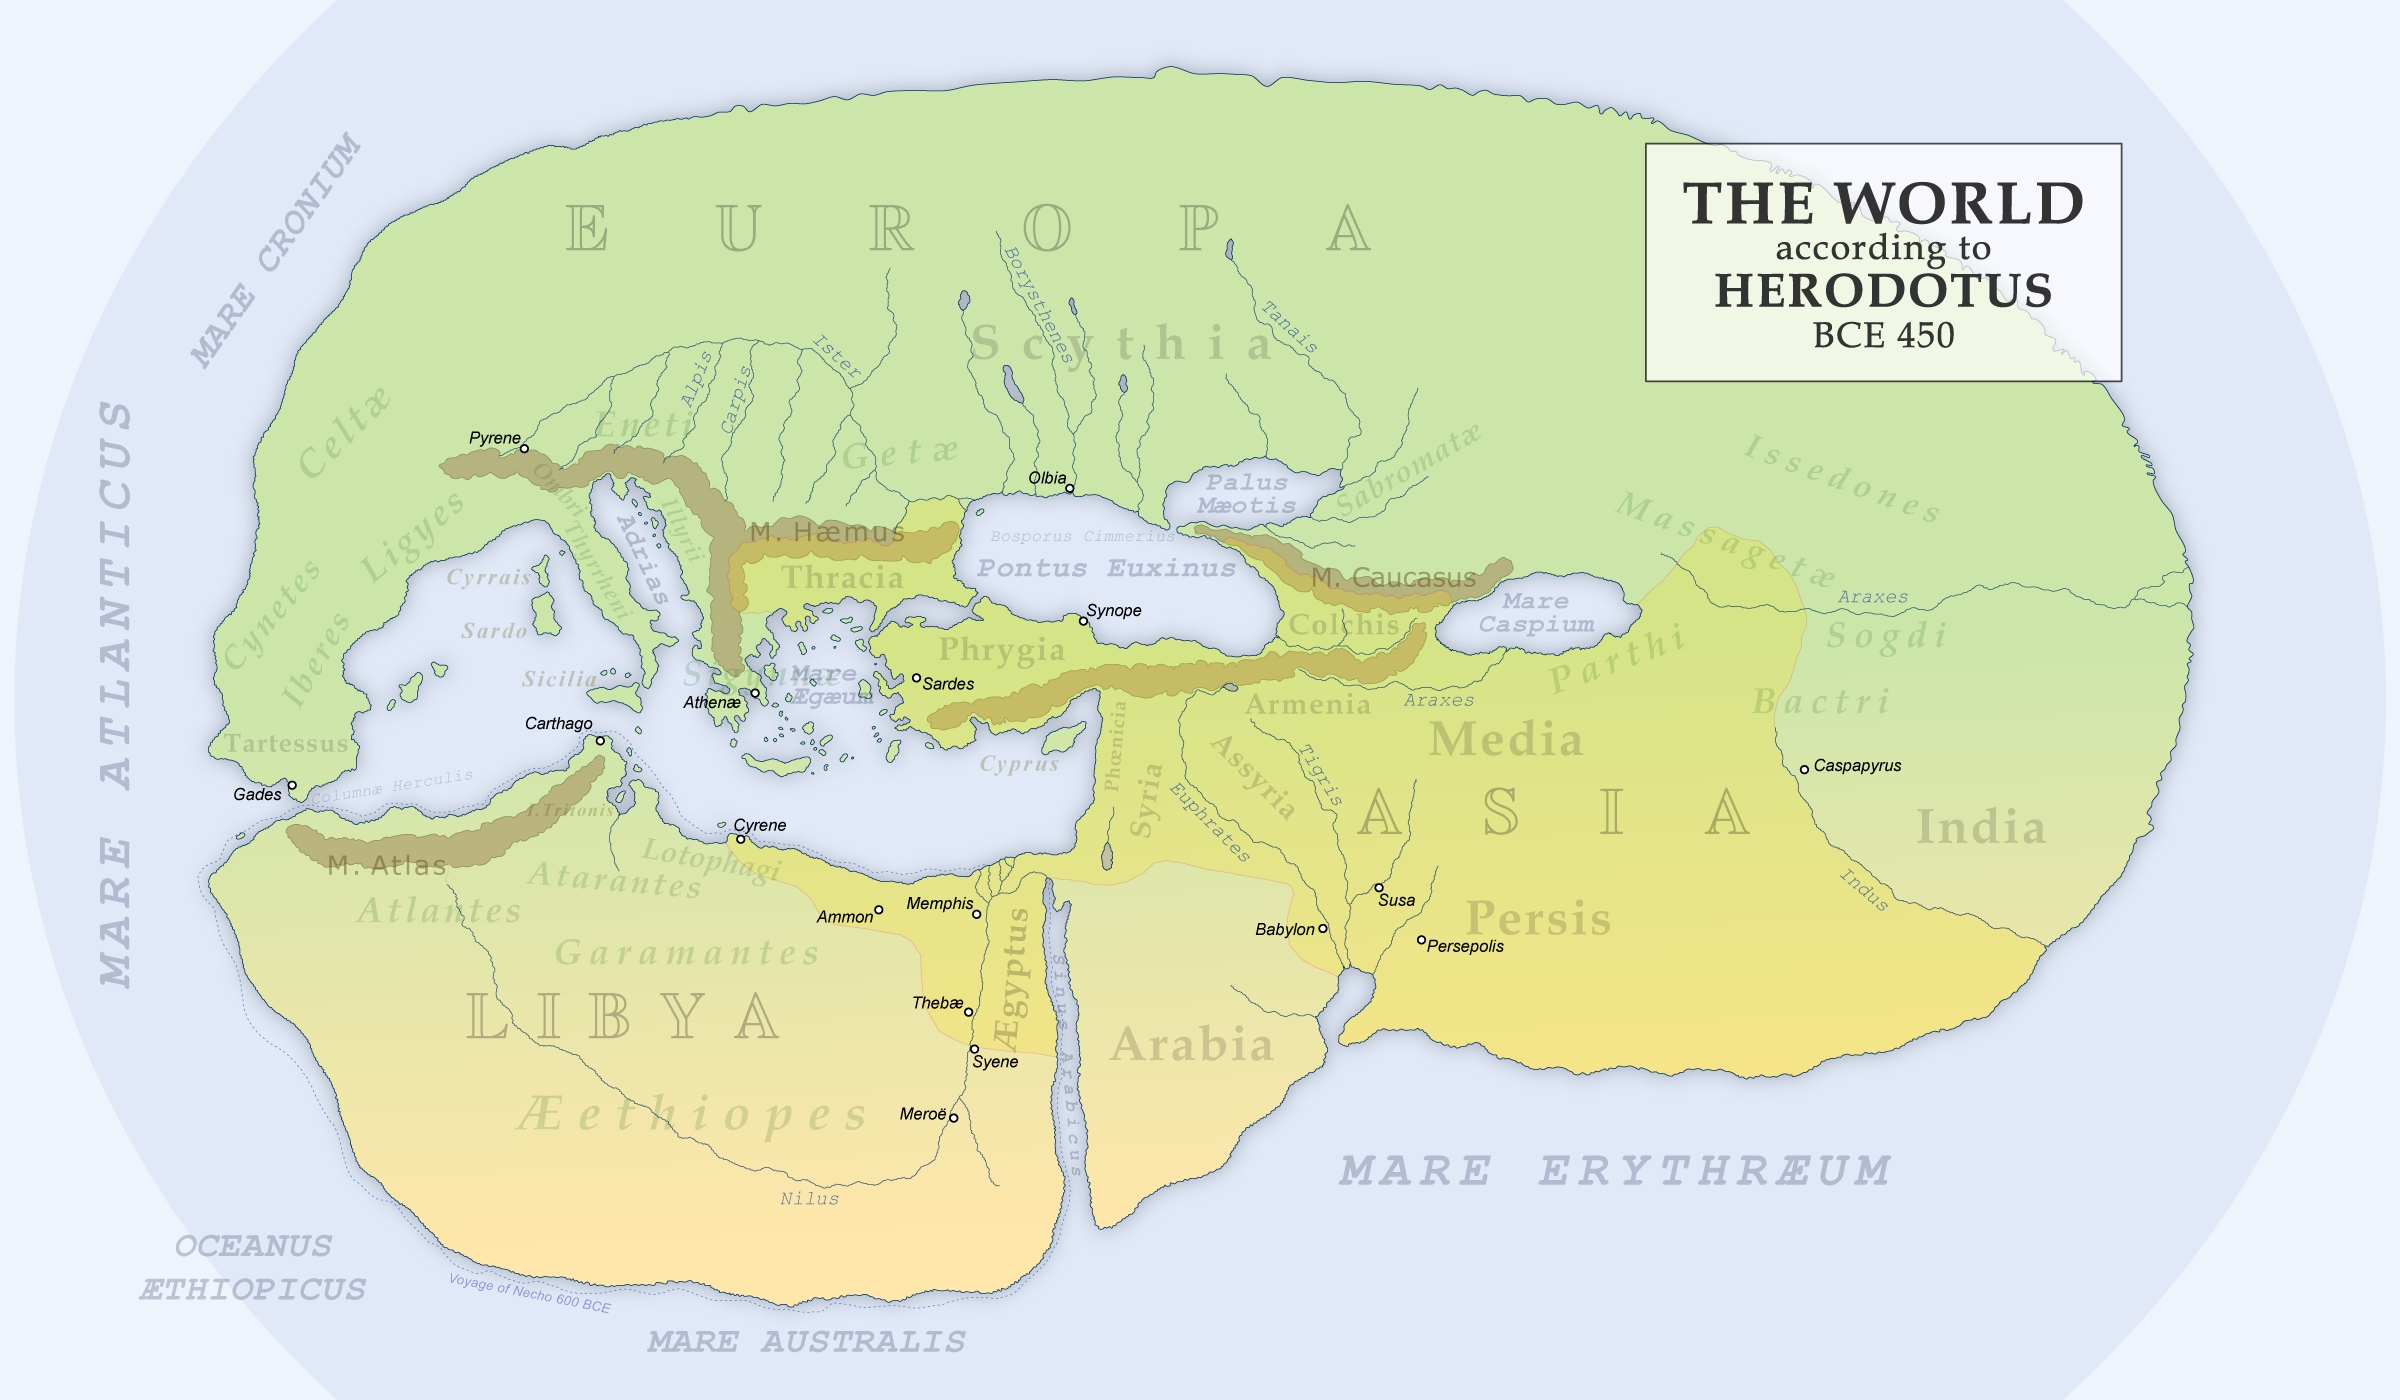 Fileherodotus world mapg wikimedia commons fileherodotus world mapg gumiabroncs